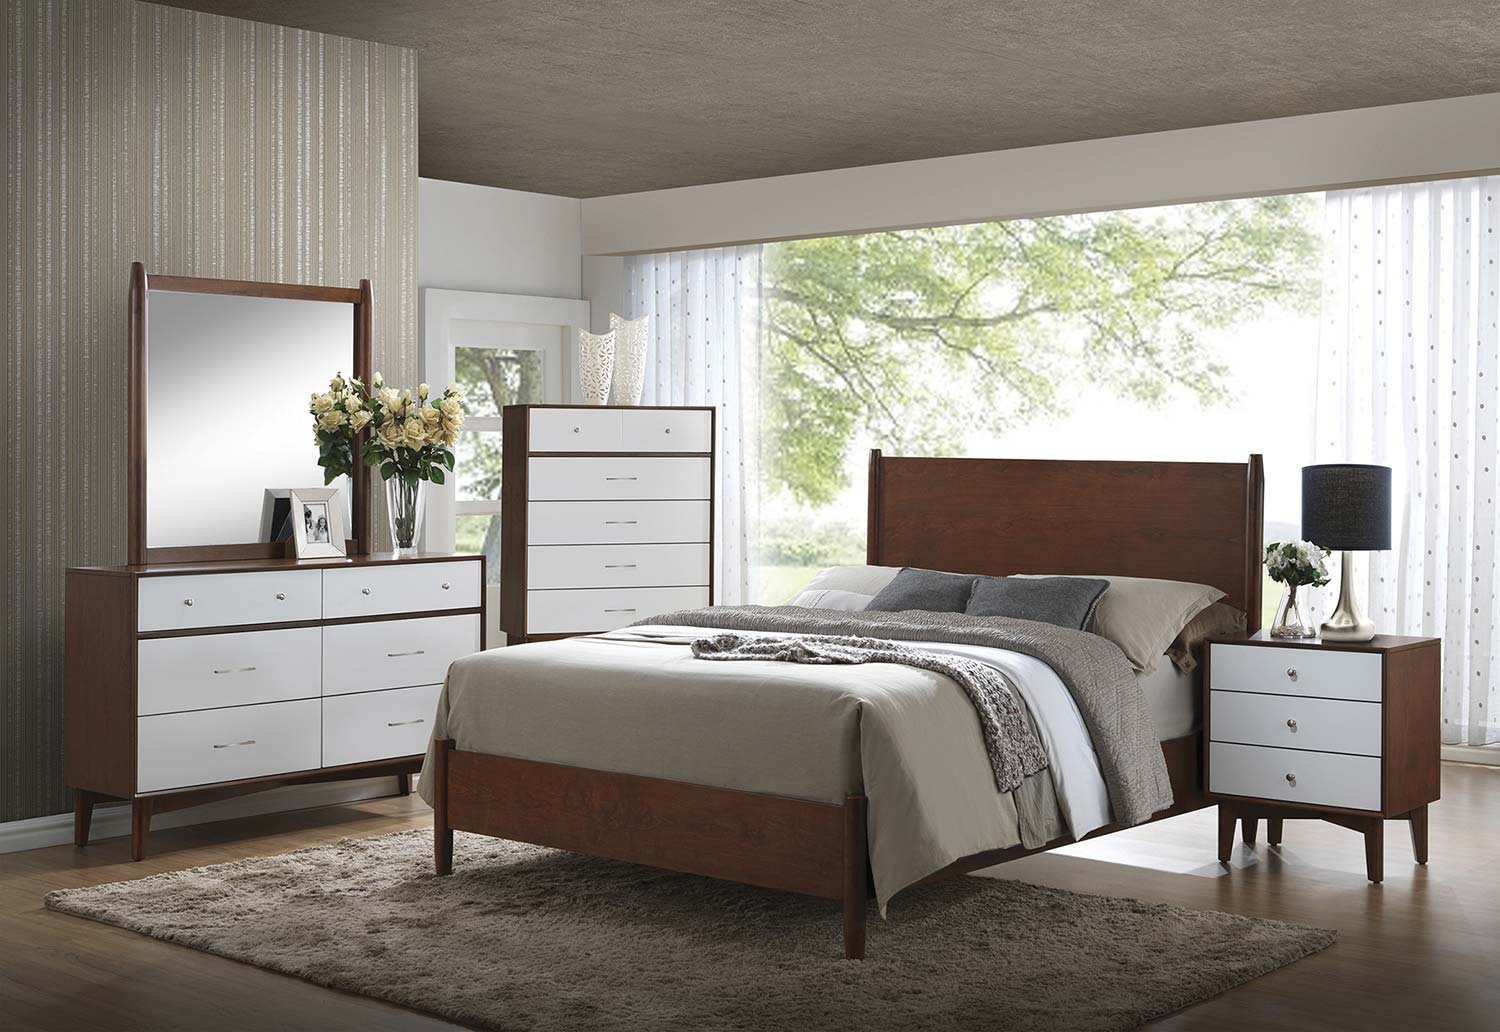 Coaster Oakwood Bedroom Set - Golden Brown/White